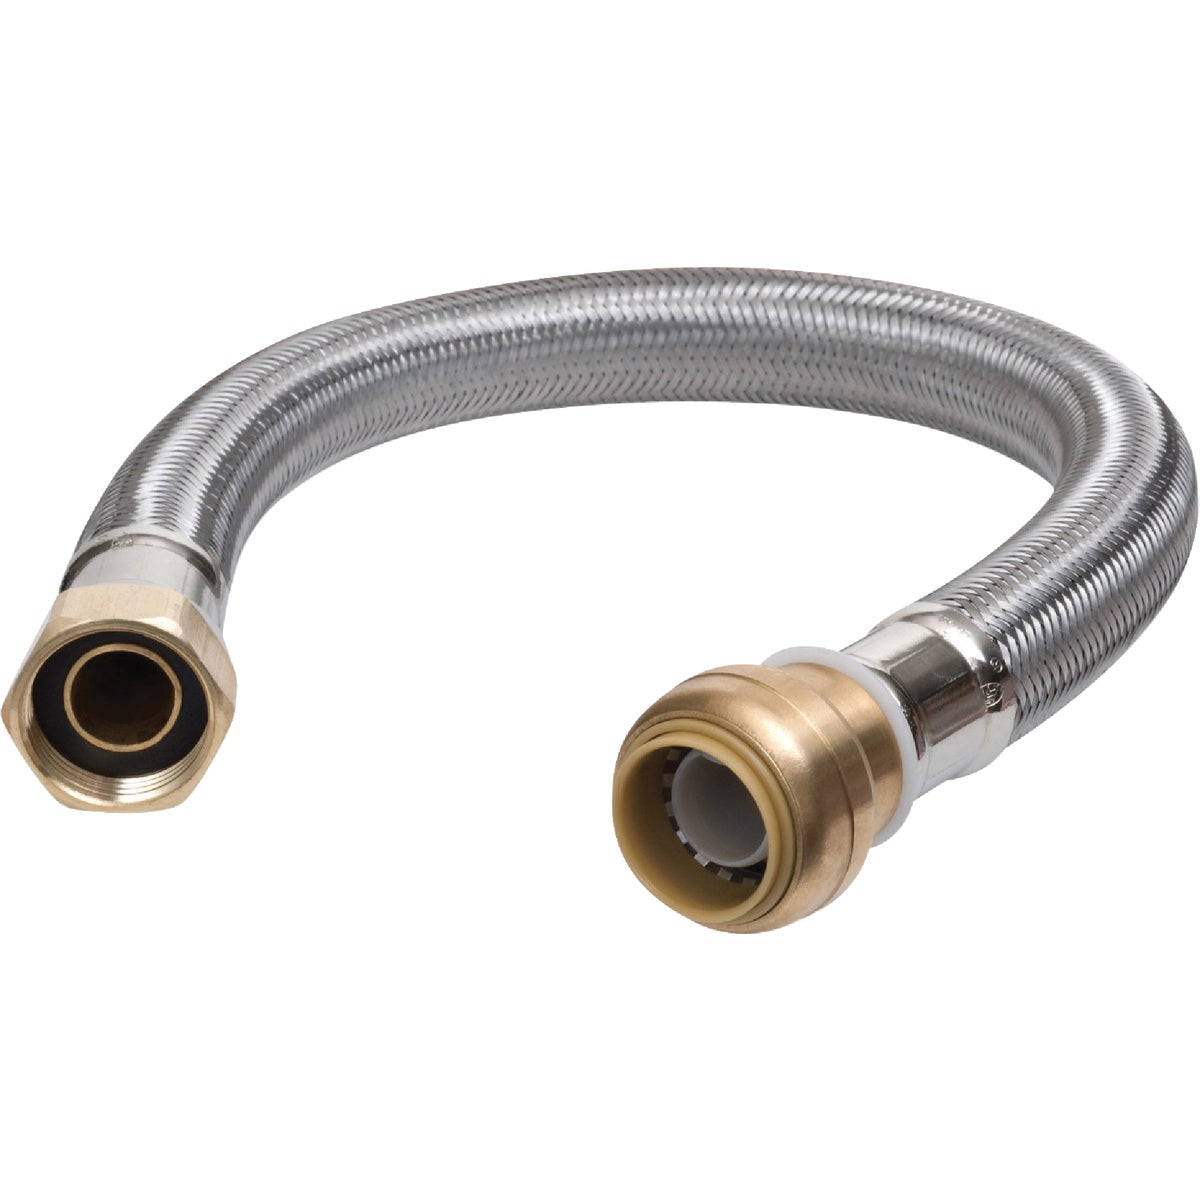 "24""SB WTR HTR CONNECTOR - U3088FLEX24LF by Cash Acme"